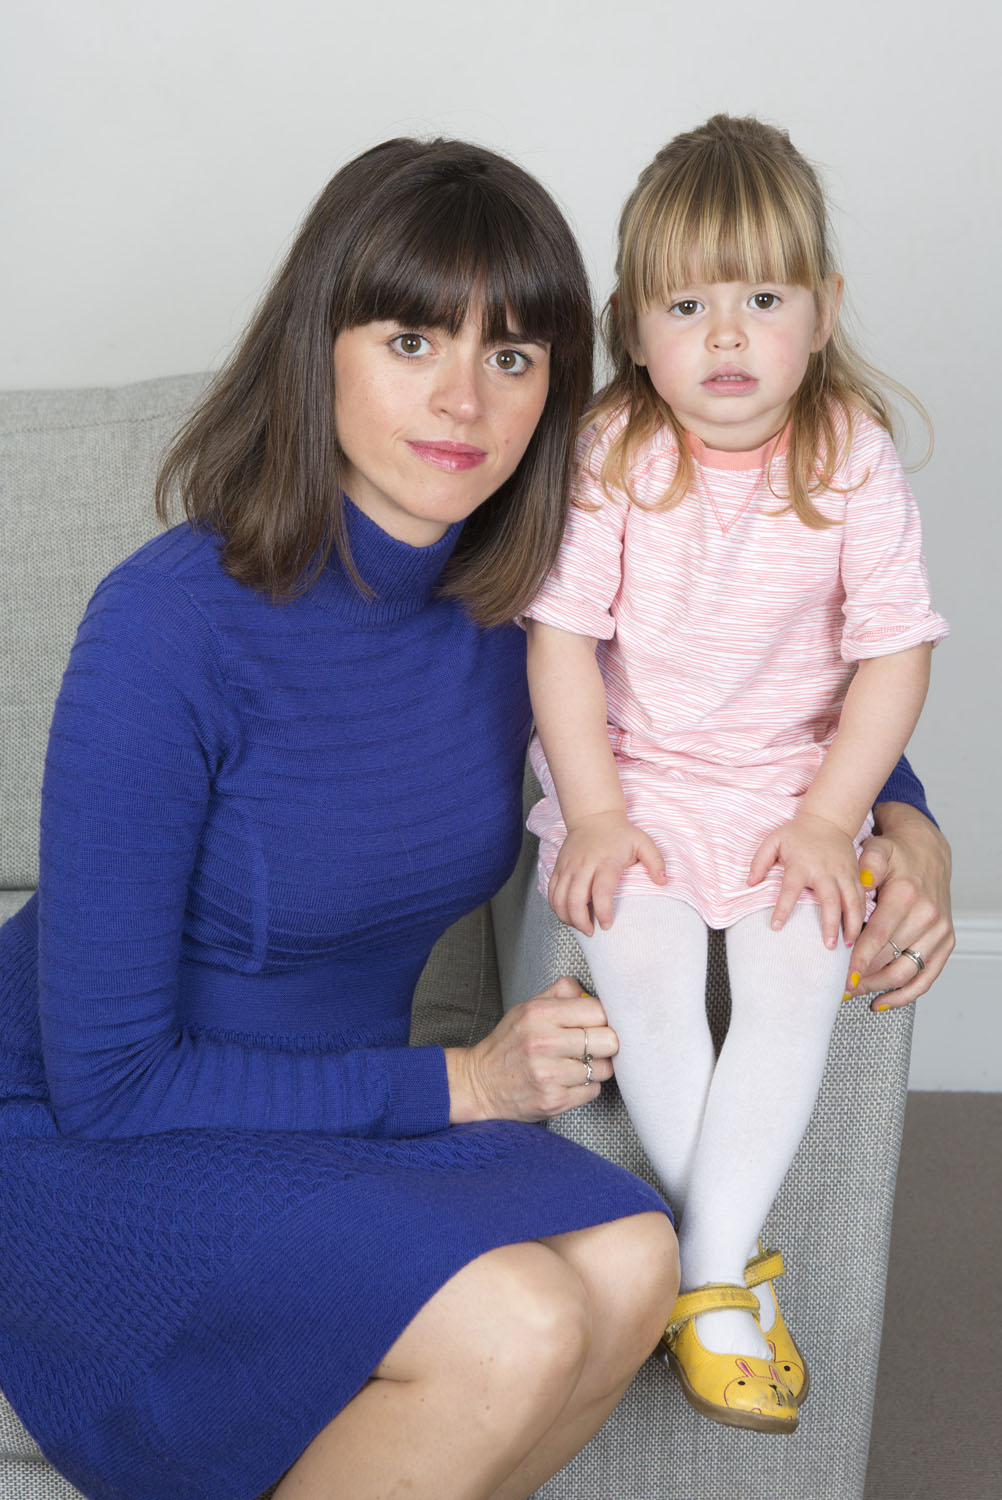 http://www.dailymail.co.uk/health/article-3300918/When-nappy-rash-really-sign-allergy-Baby-wipes-cleaning-sprays-potty-training-seats-blame.html